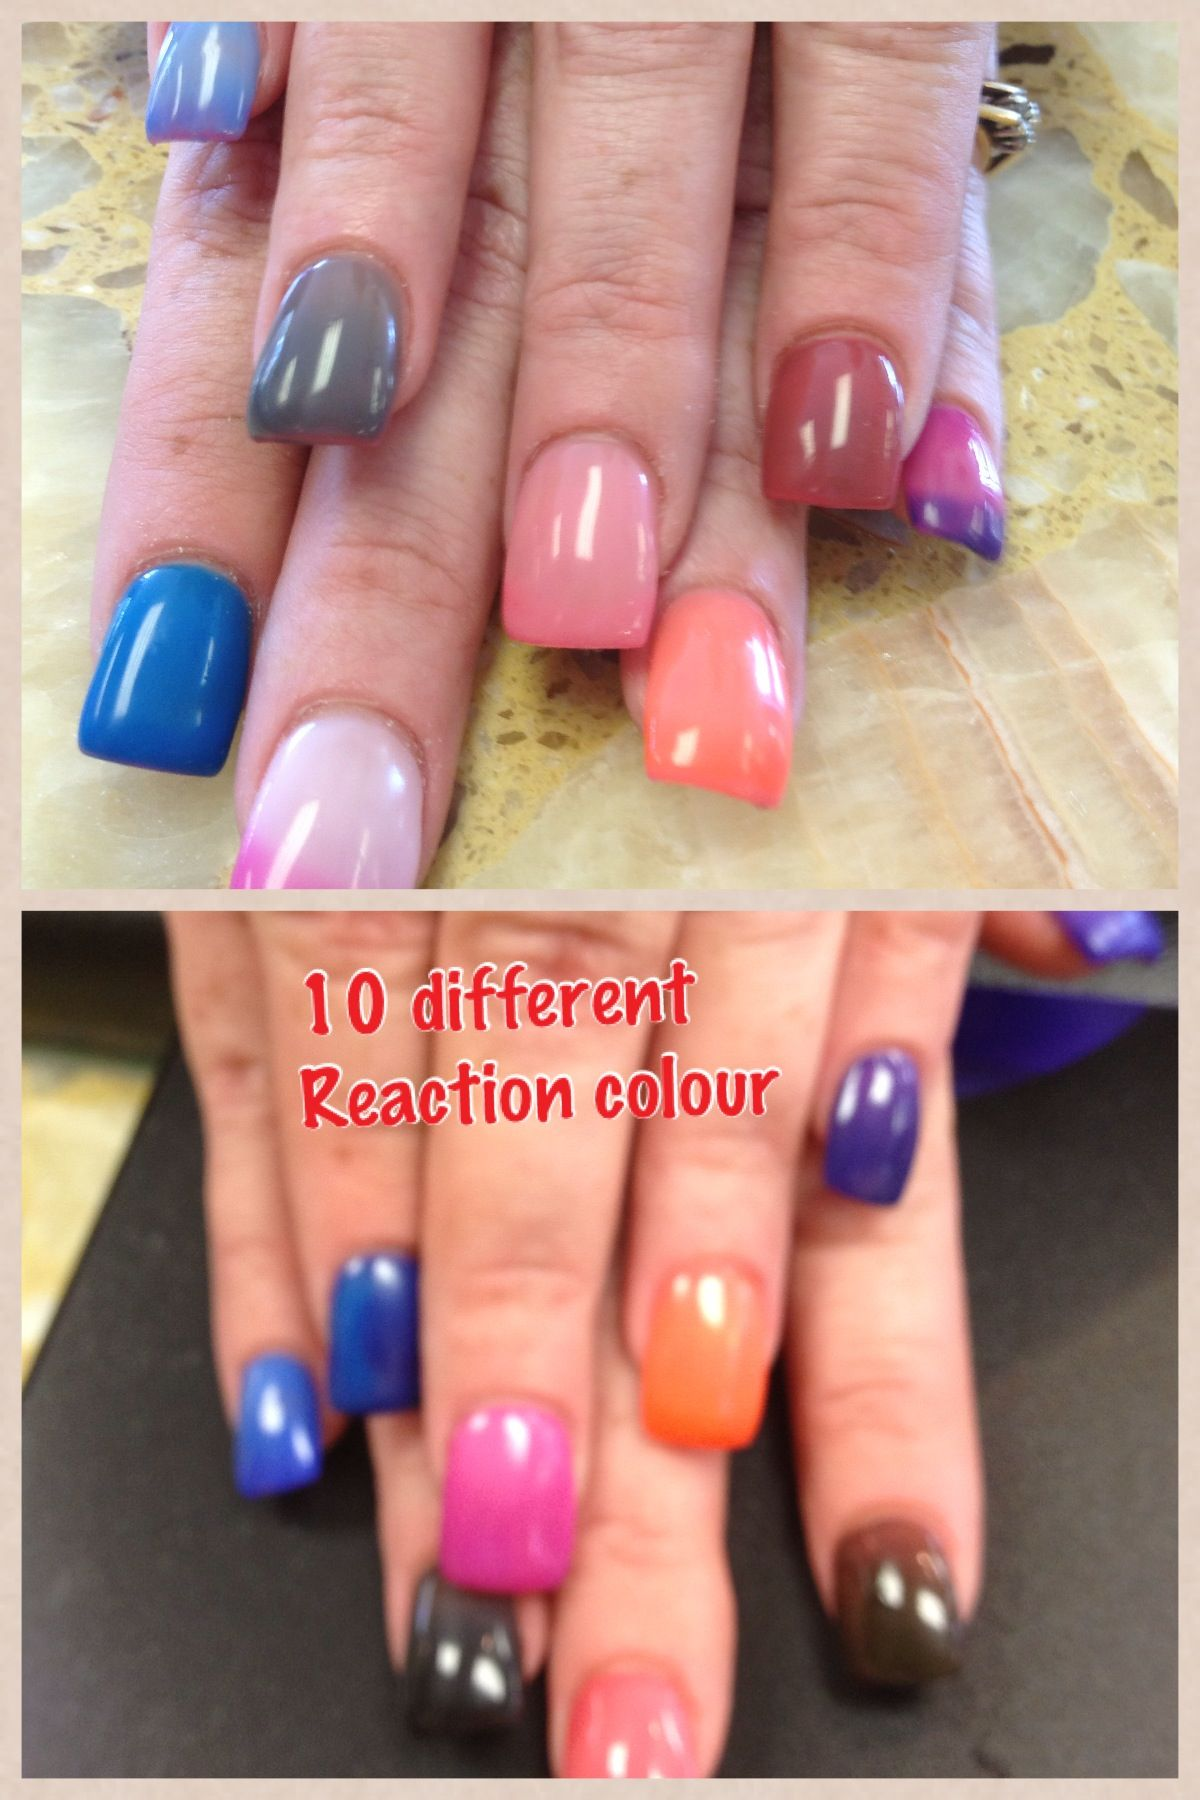 Gel 2 Manicure (10 different reaction colour) Clout changing by ...